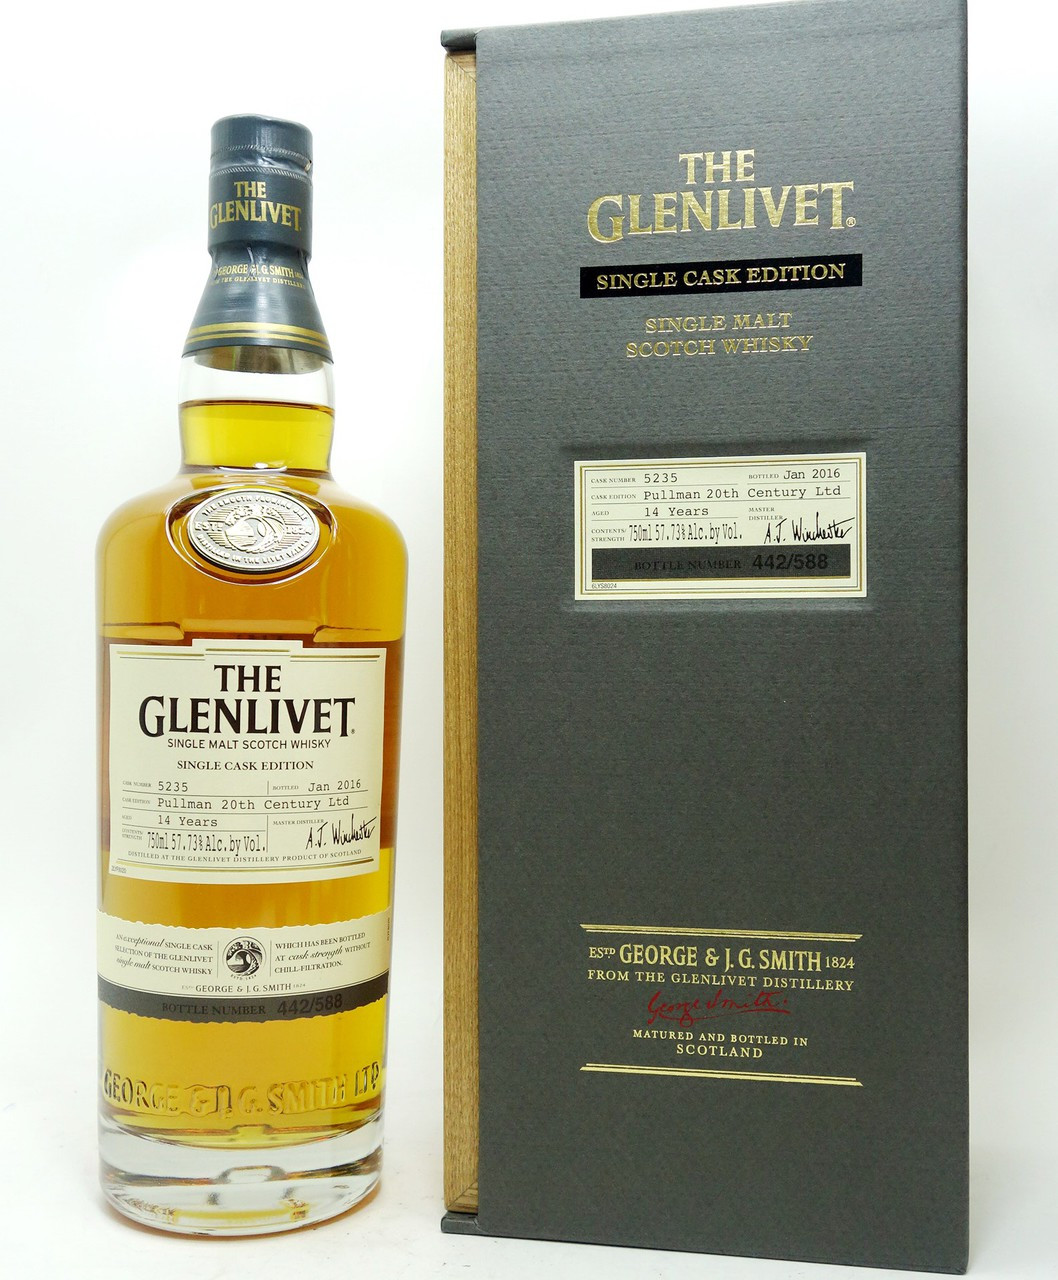 d61b9728e78 ... THE GLENLIVET SINGLE CASK EDITION SCOTCH WHISKY 14 YEARS PULLMAN 20TH  CENTURY ...